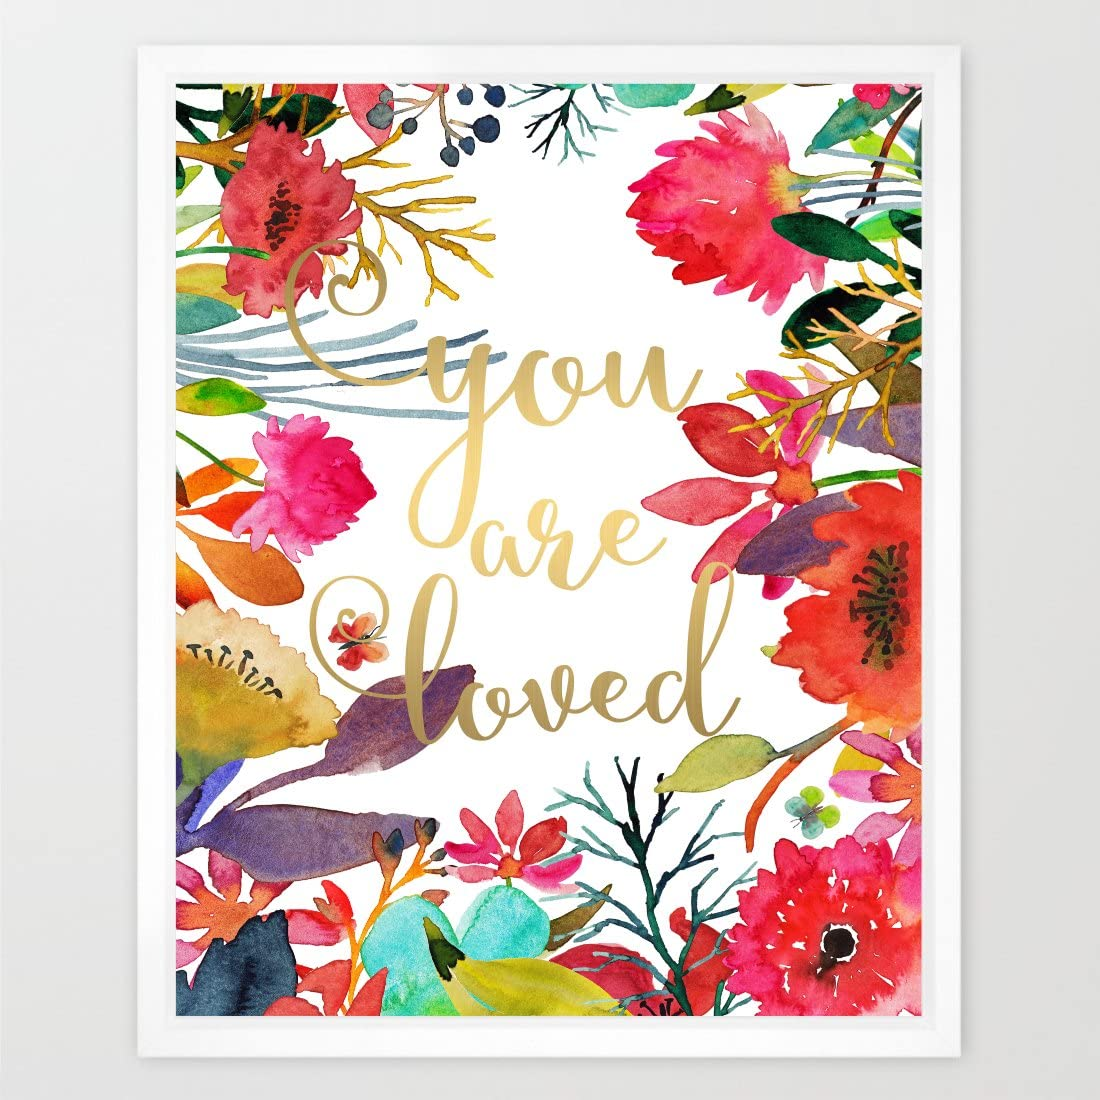 Eleville 8X10 You are loved Real Gold Foil and Floral Watercolor Art Print (Unframed) Nursery Wall Art Home Decor Motivational Art Inspirational Print Birthday Wedding Gift Quote Print WG001